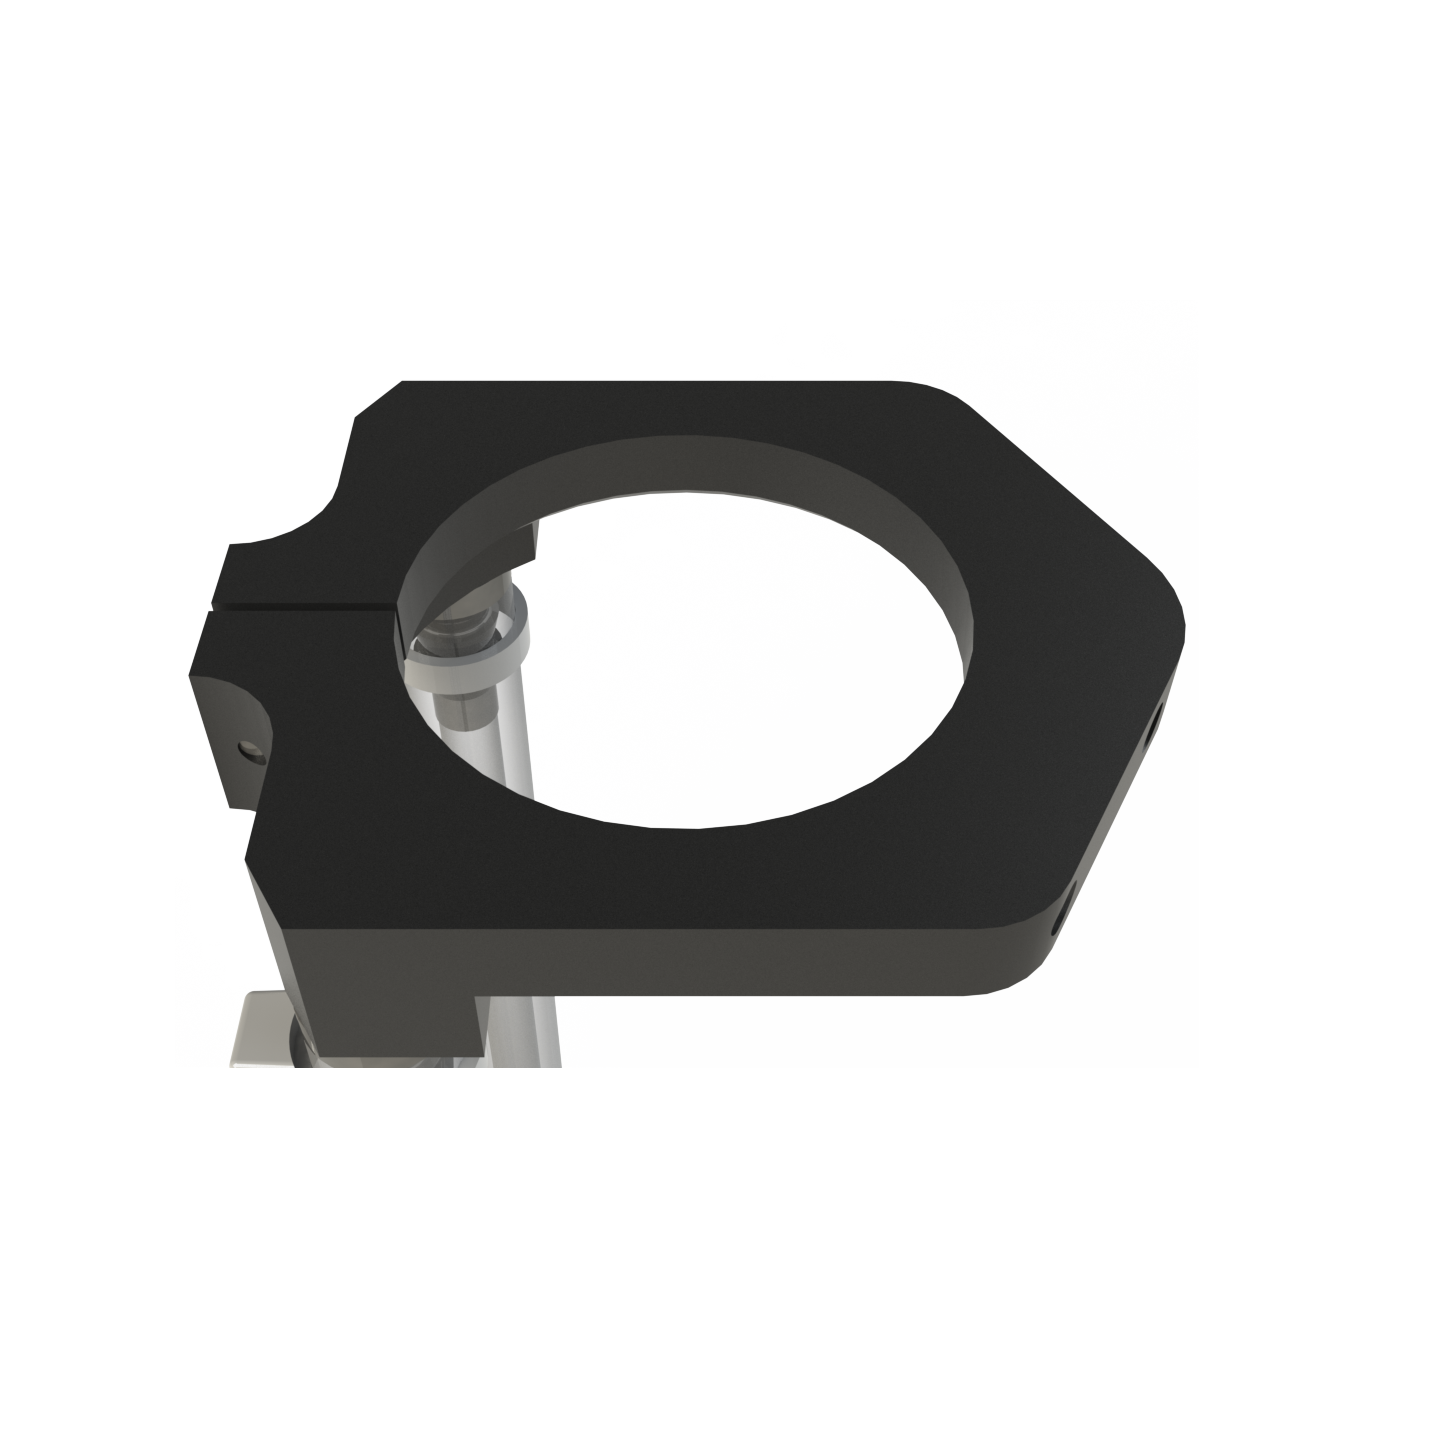 Cooling/Heating Objective Ring